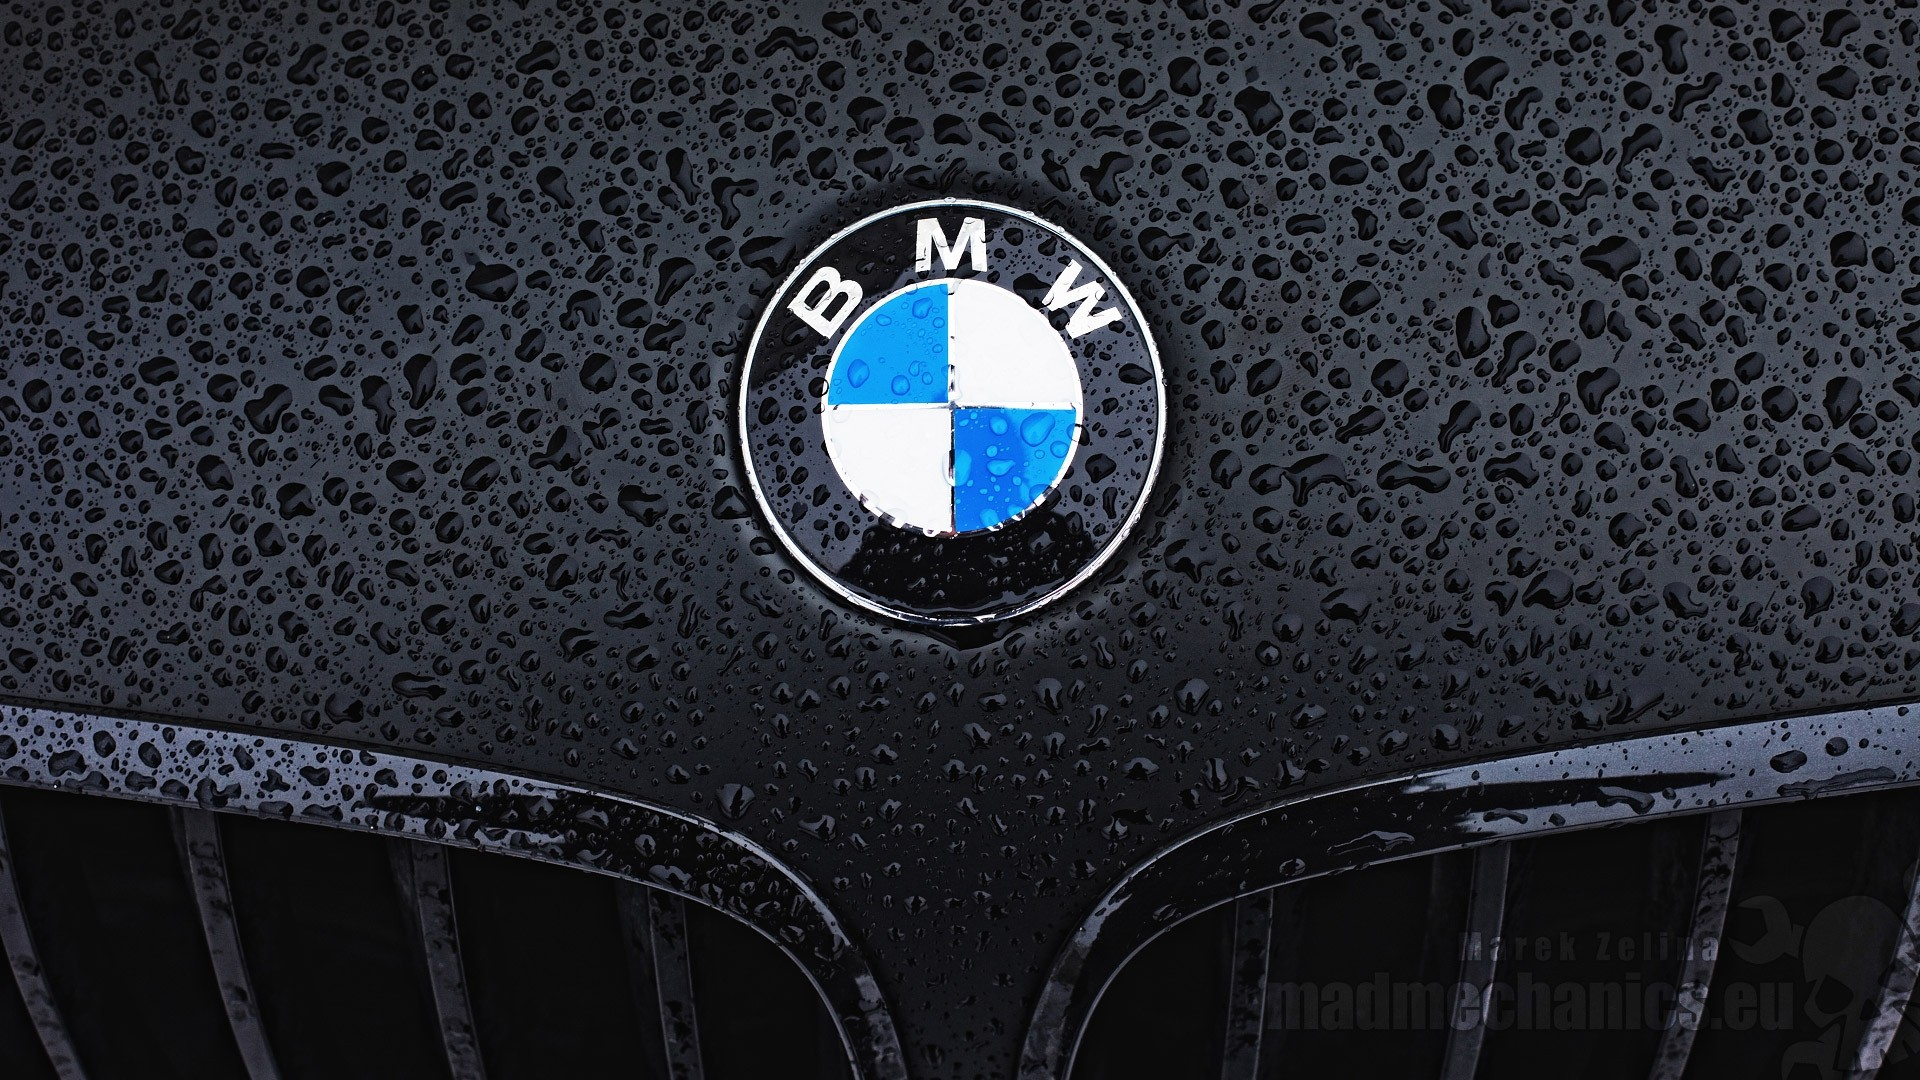 BMW-Car-Company-Logo-HD-of-Logo-Pictures-HD-wallpaper-wp3403432